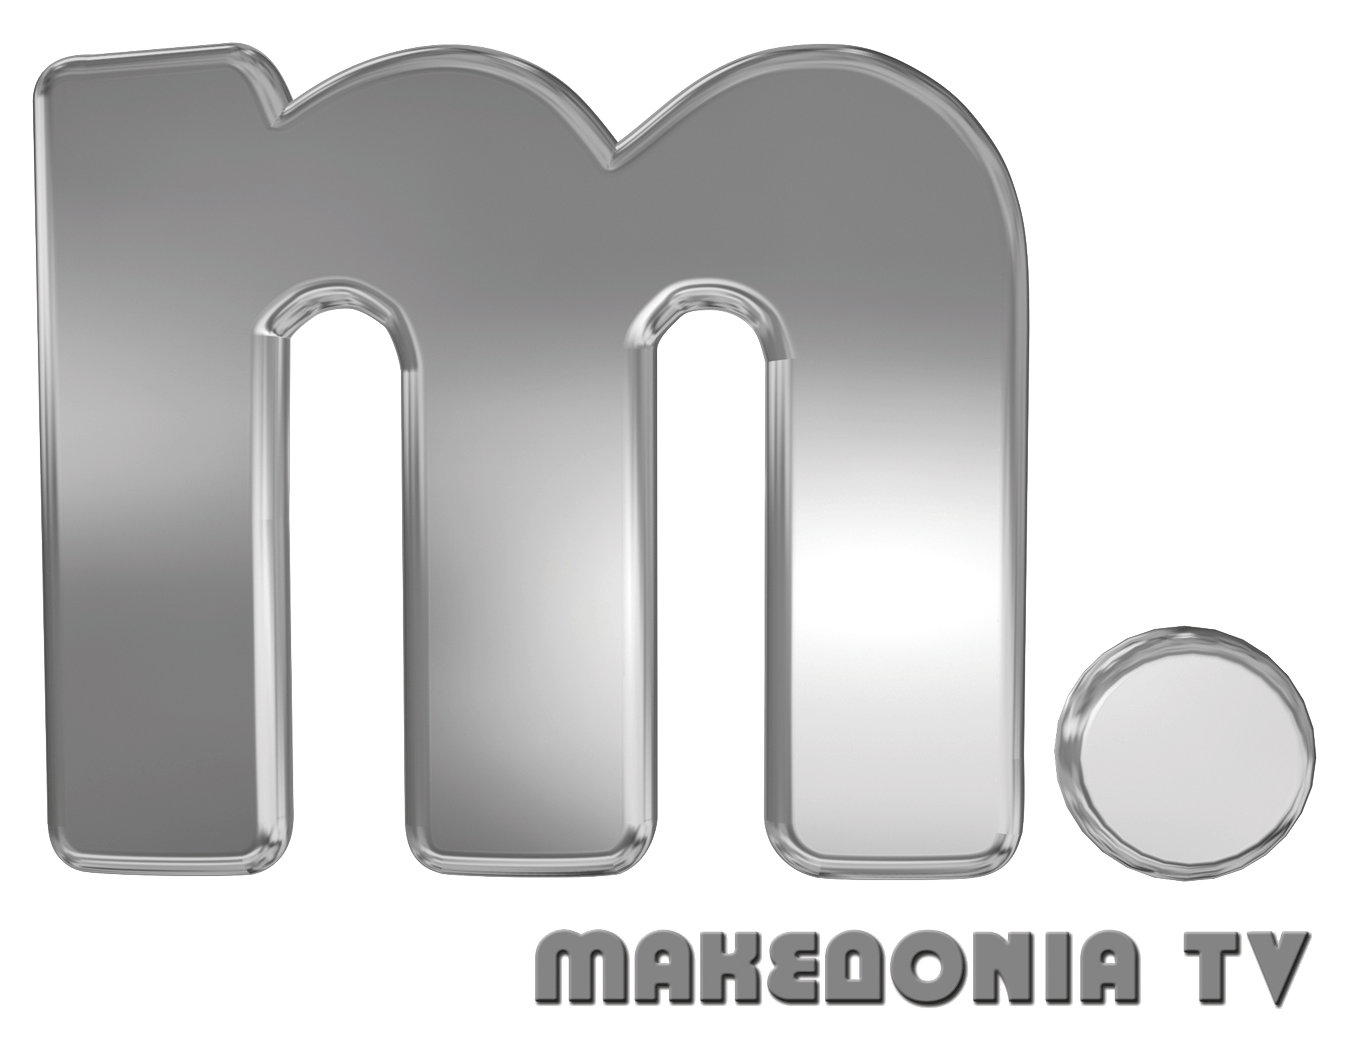 Makedonia Tv On Hotbird Frequency Channel Frequency